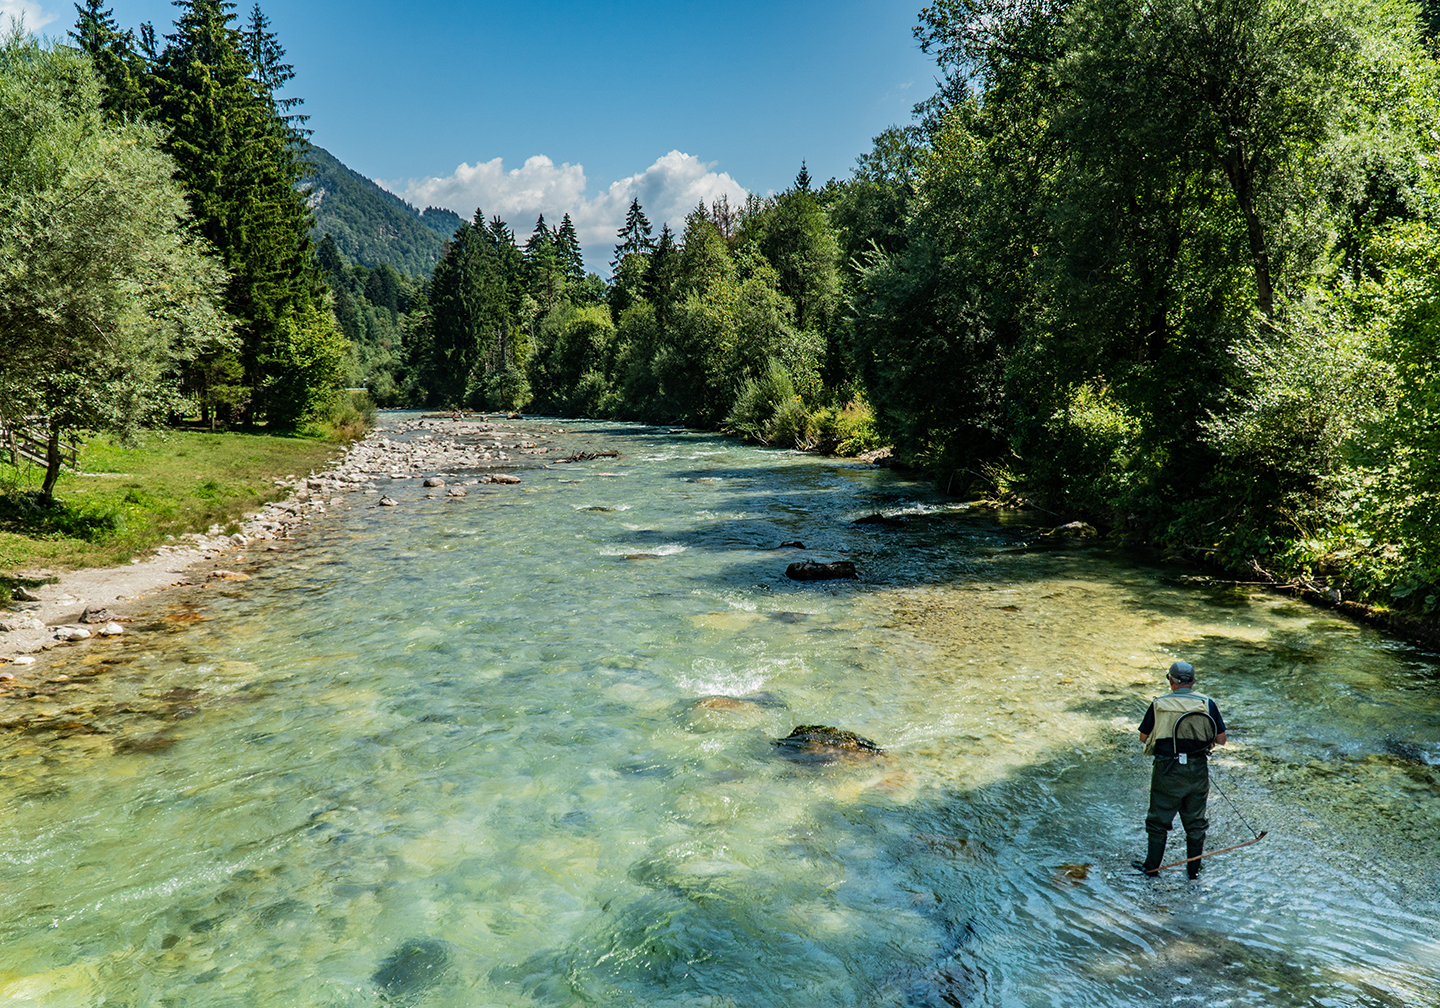 A clean shallow stream with trees either side, blue sky above, and a fly fisherman wading to the bottom right. This is a scene typical of fly fishing in Slovenia.